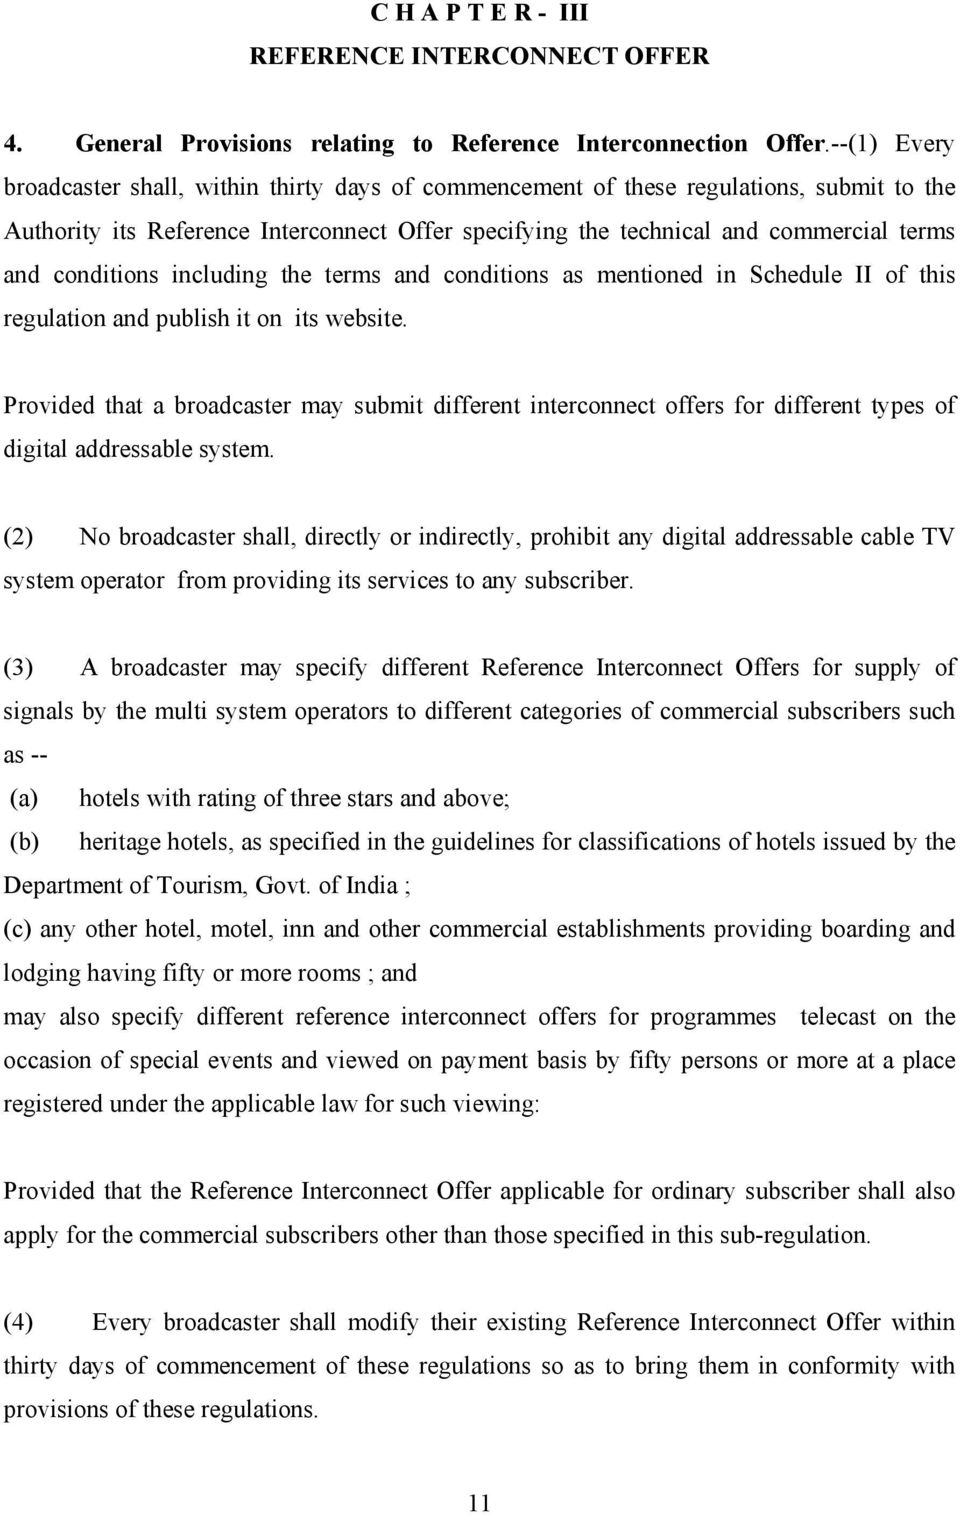 conditions including the terms and conditions as mentioned in Schedule II of this regulation and publish it on its website.